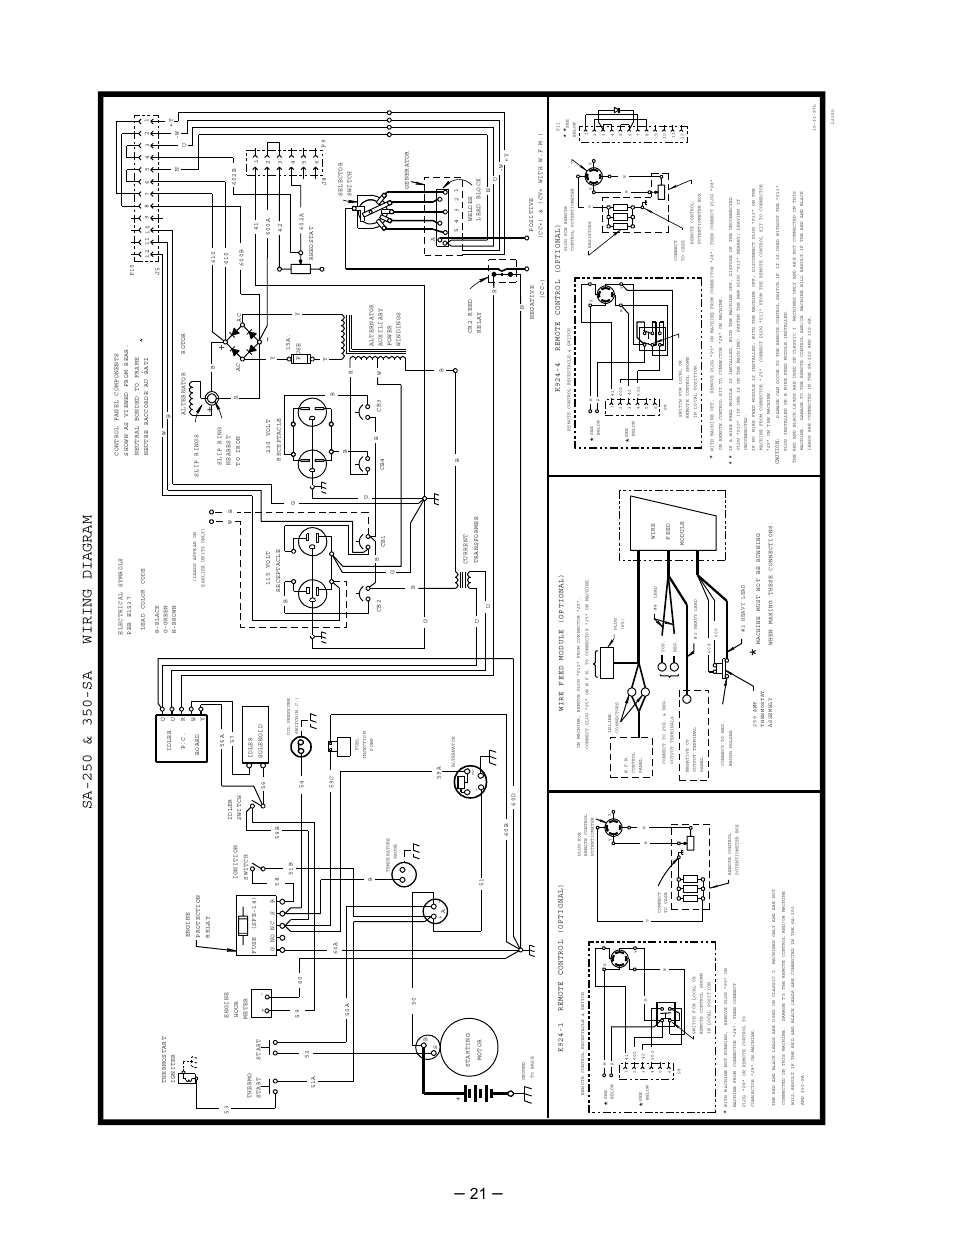 lincoln electric perkins sa 250 page22 miller bluestar 2e wiring diagram diagram wiring diagrams for Miller Roughneck 1E Parts at fashall.co